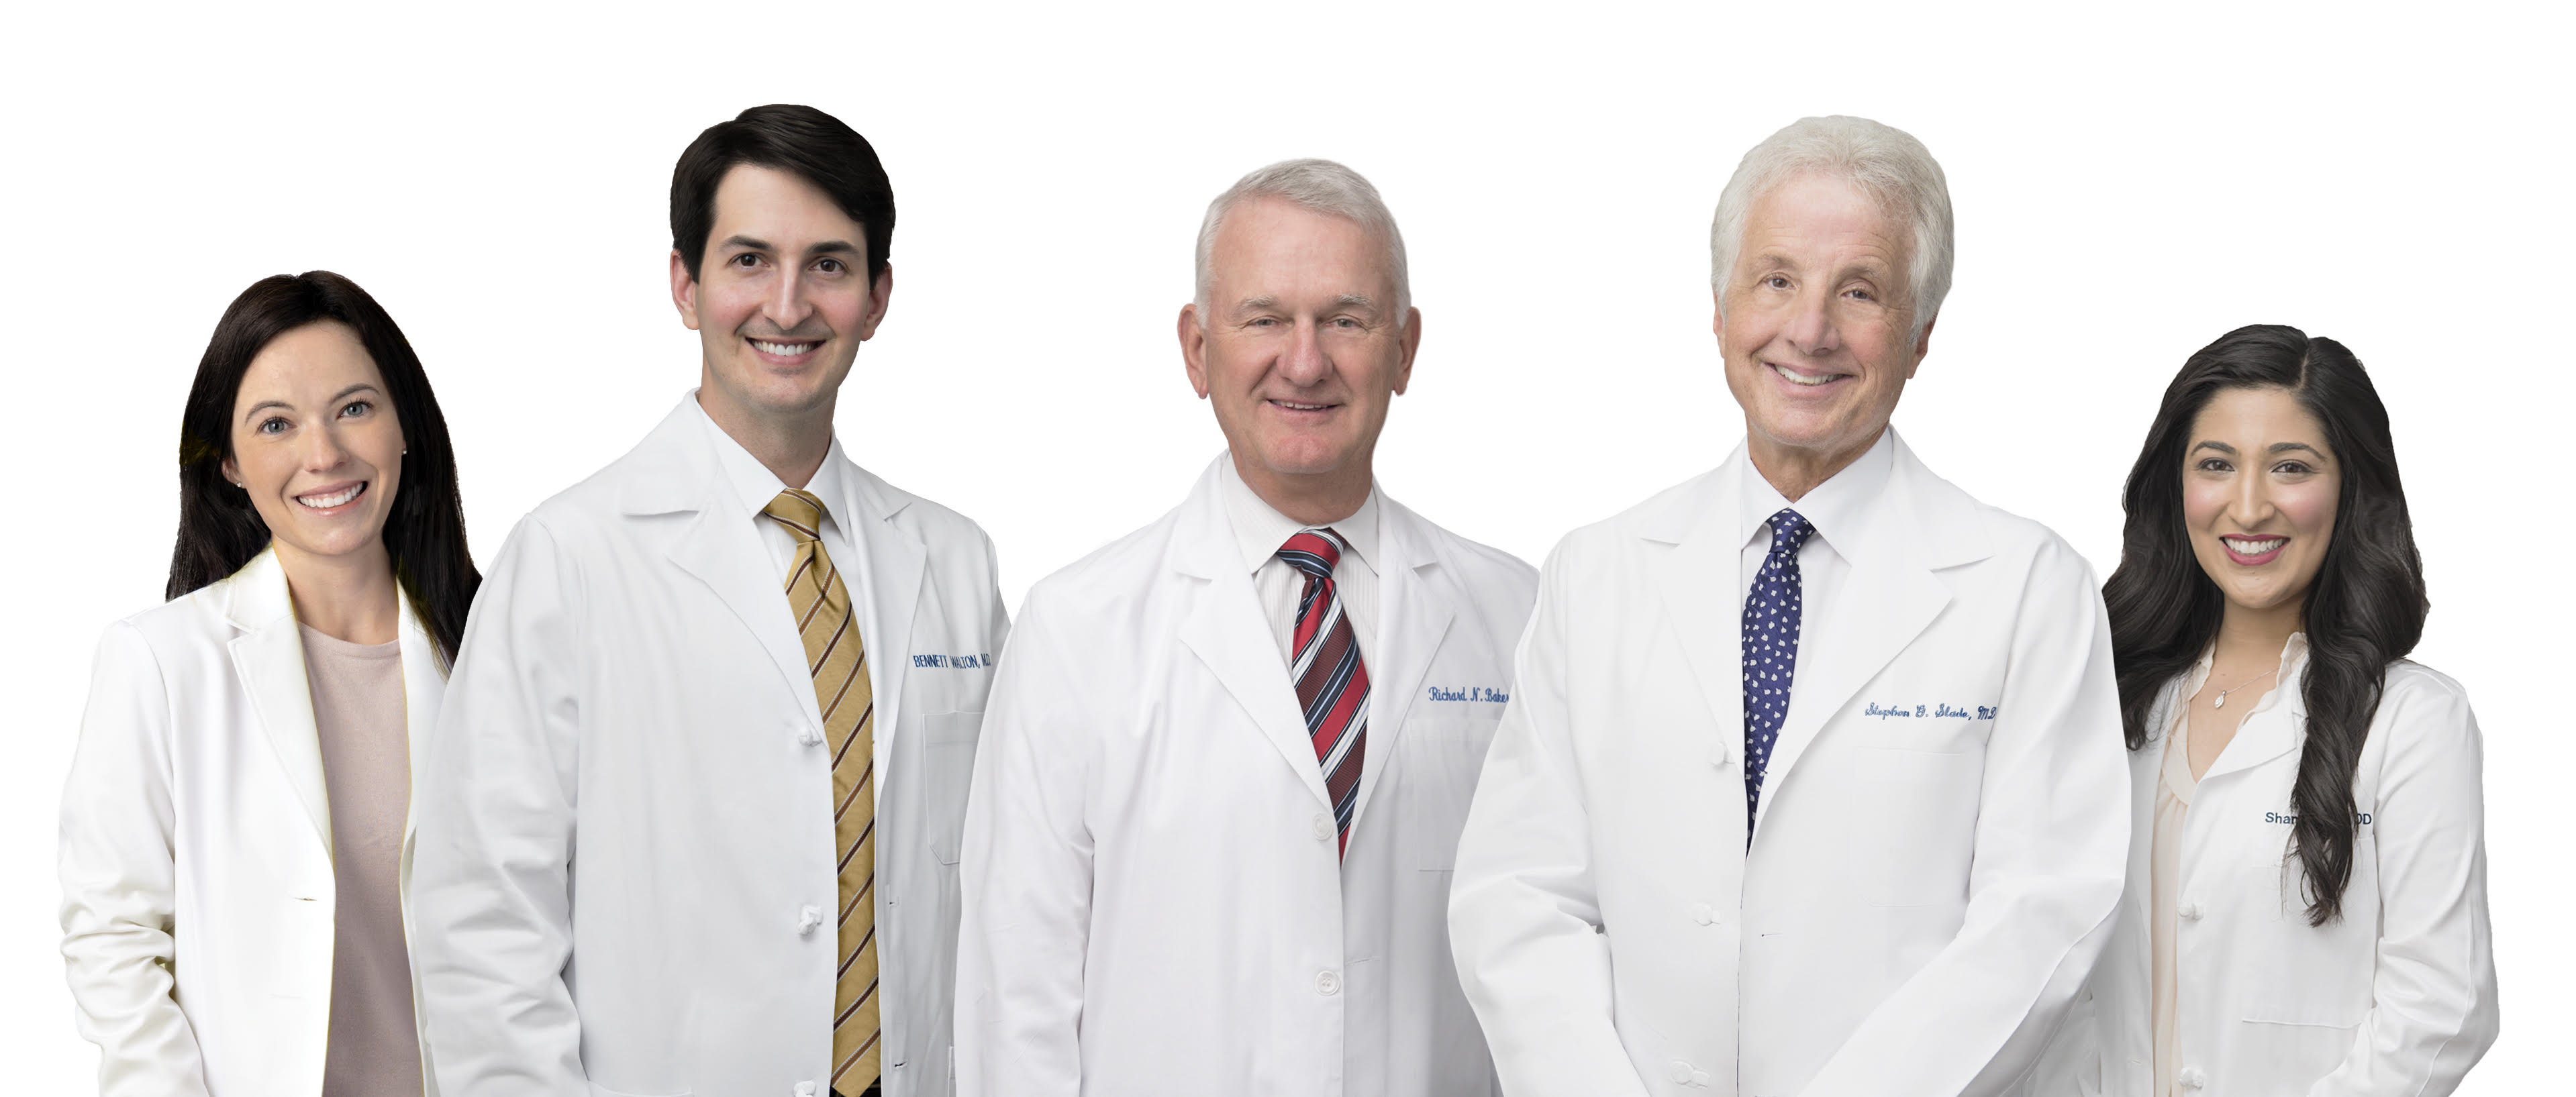 Ophthalmologists | Eye Doctors | Slade & Baker Vision